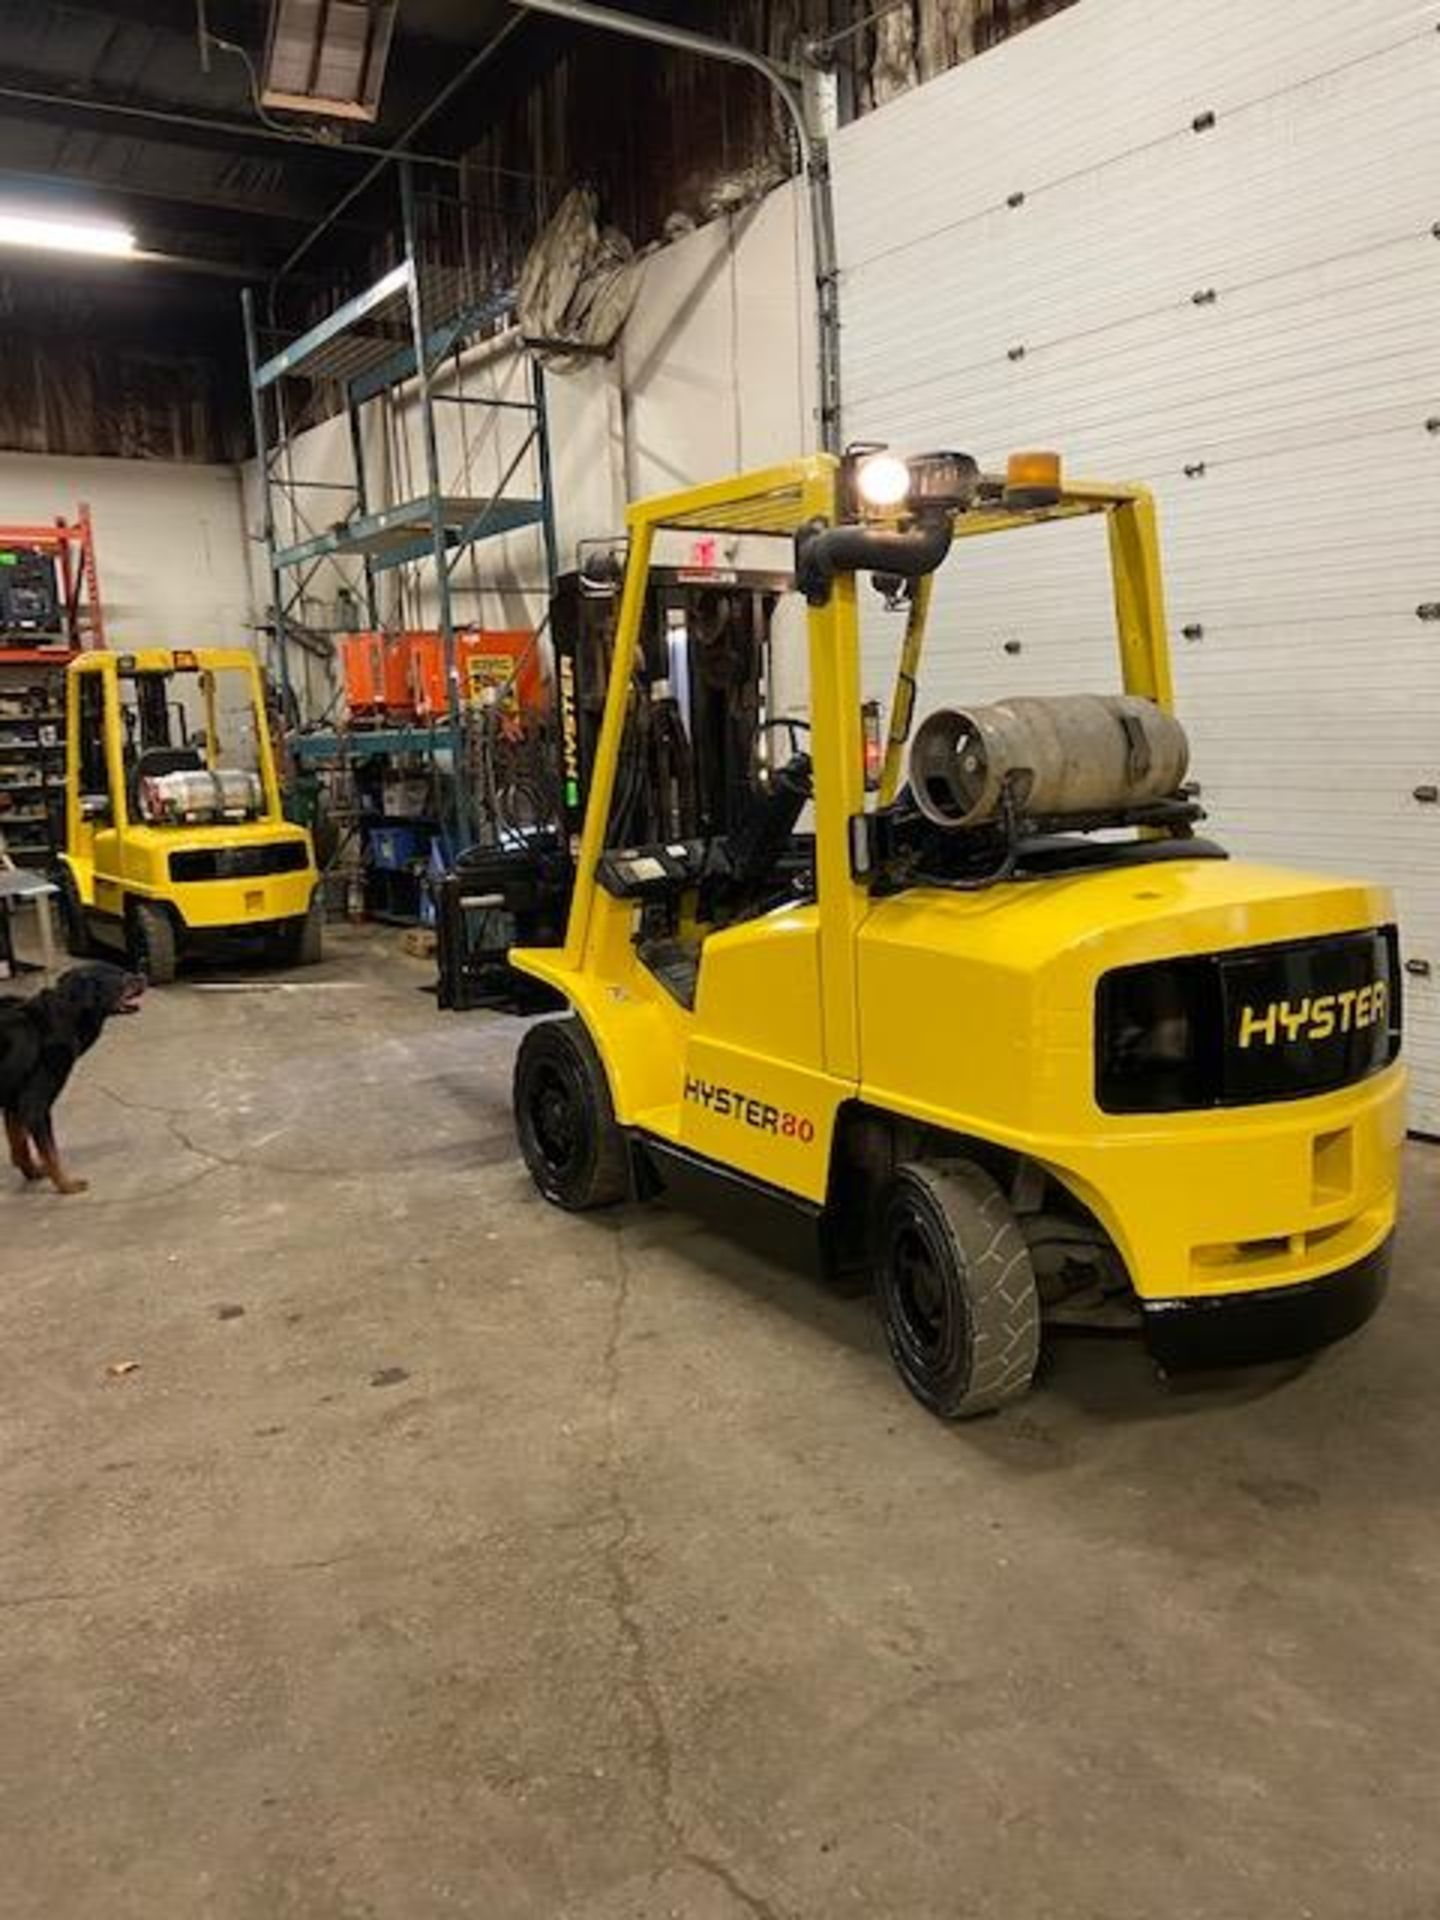 FREE CUSTOMS - Hyster 8000lbs OUTDOOR Forklift with sideshift fork positioner & 3-stage mast LPG - Image 3 of 3